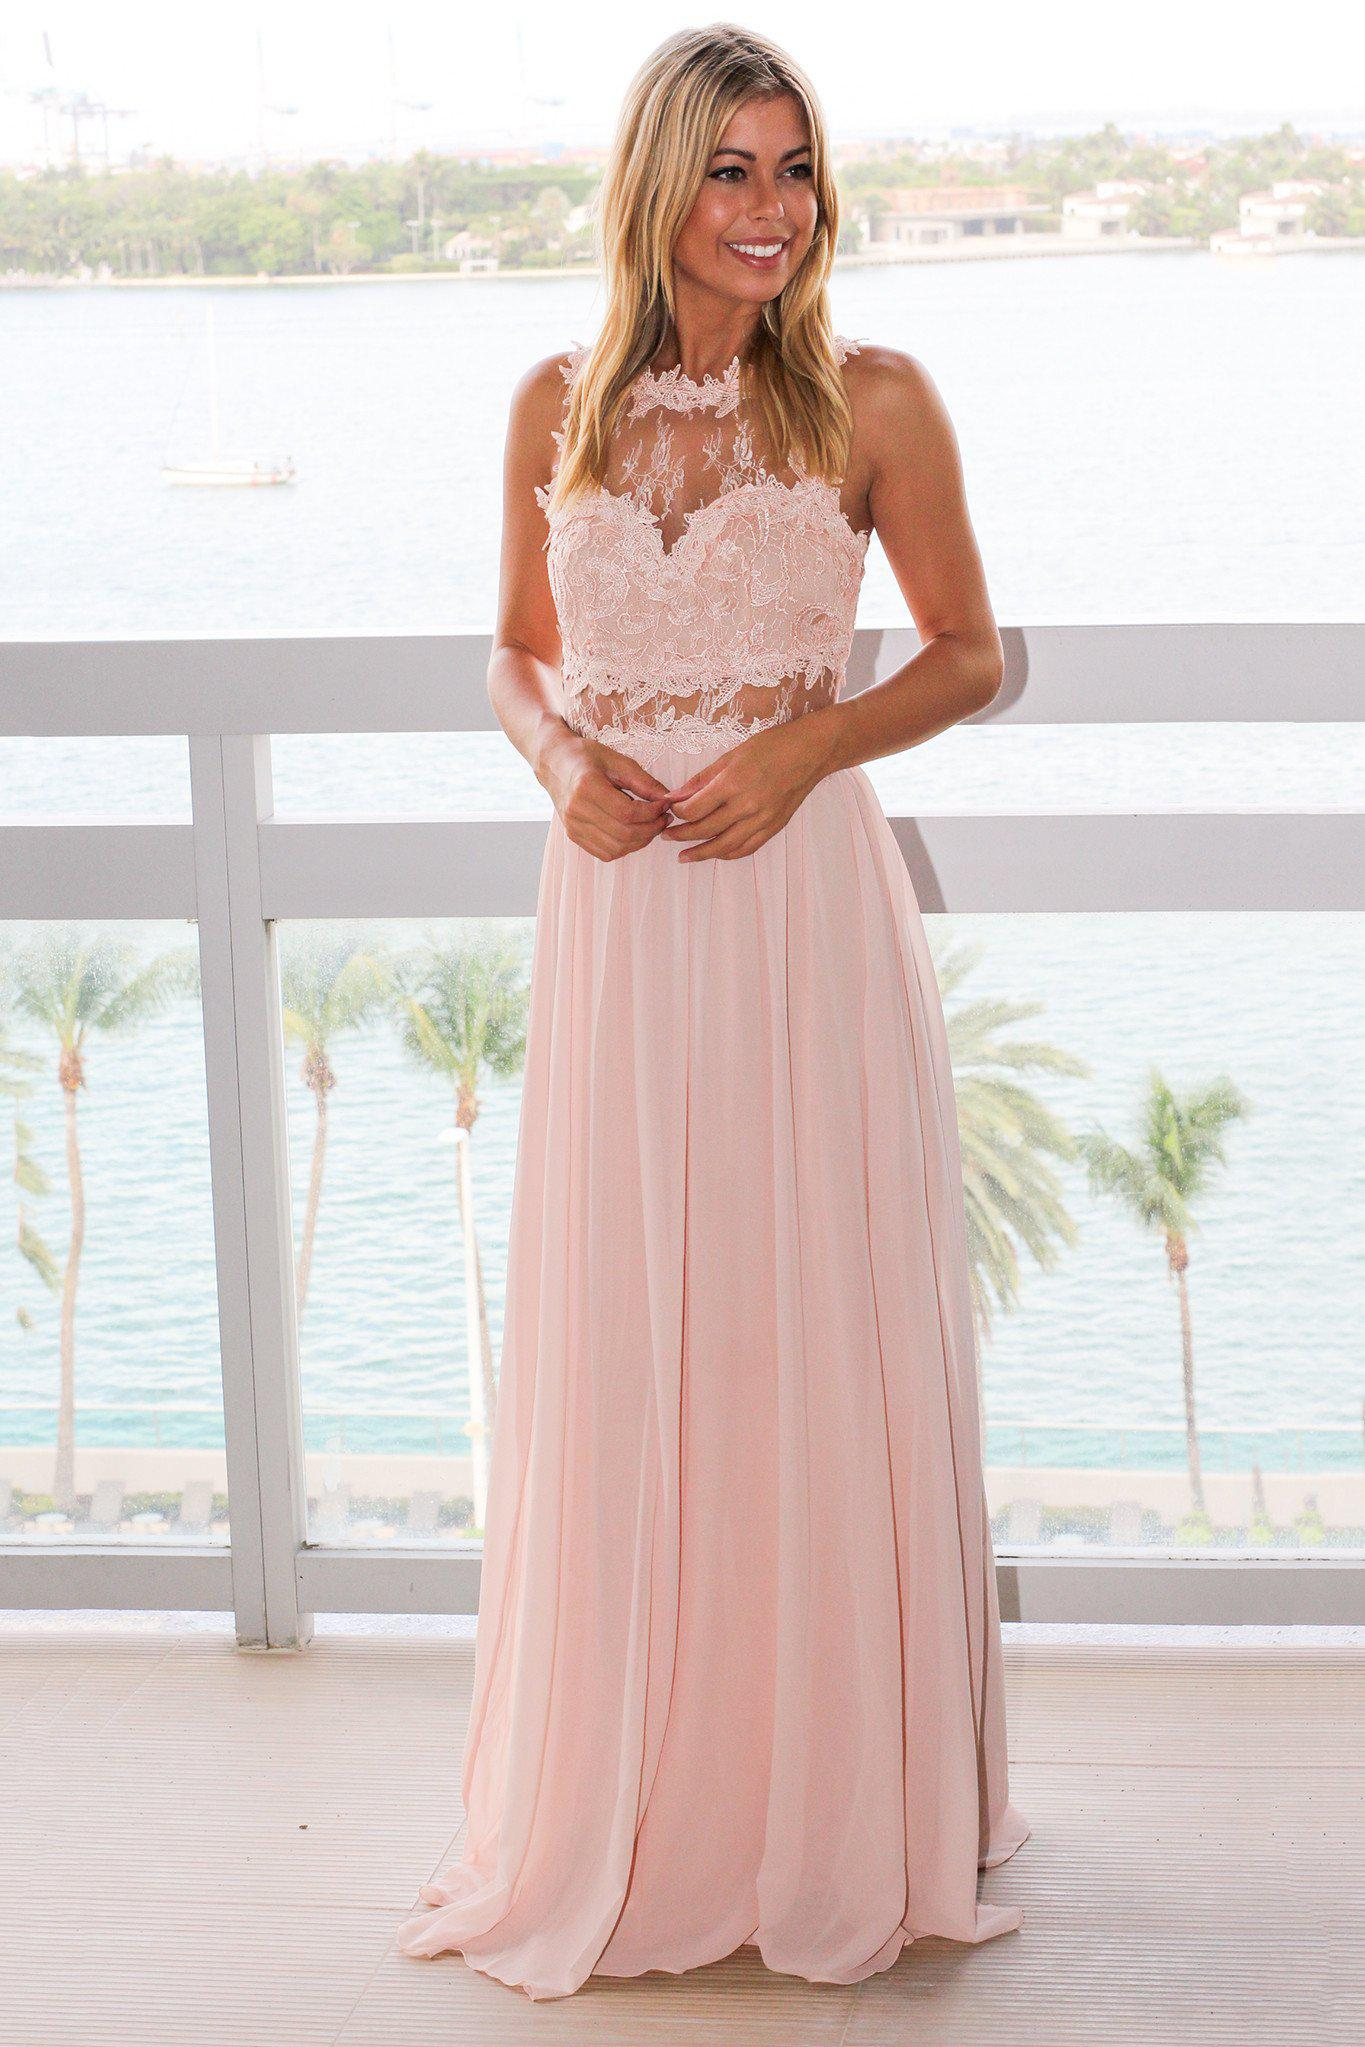 Ziemlich Say Yes To The Dress Bridesmaids Online Galerie ...